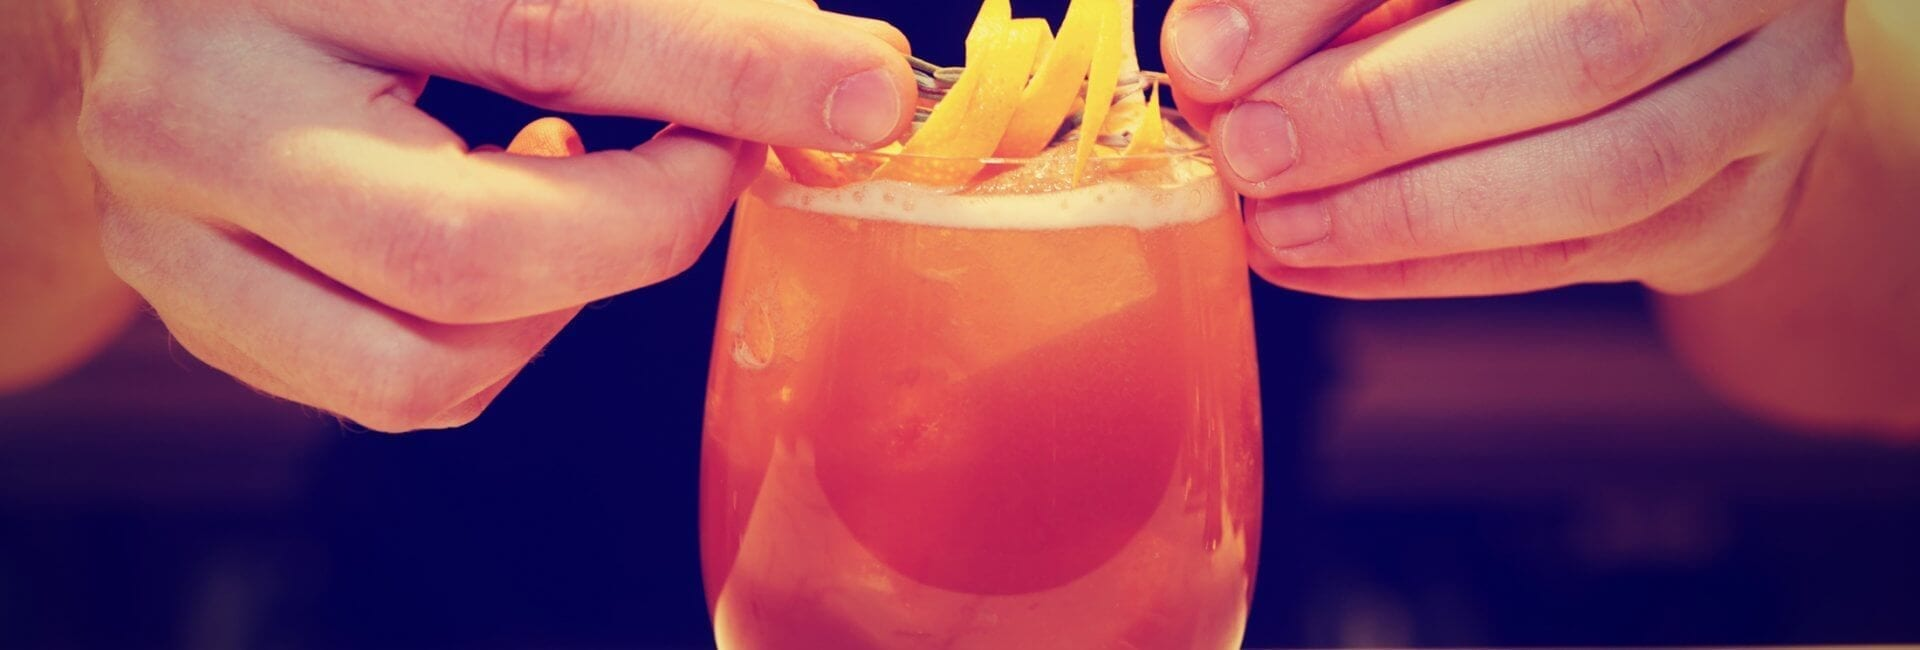 color photo of a close up of two hands placing lemon peel garnish on top of a red cocktail